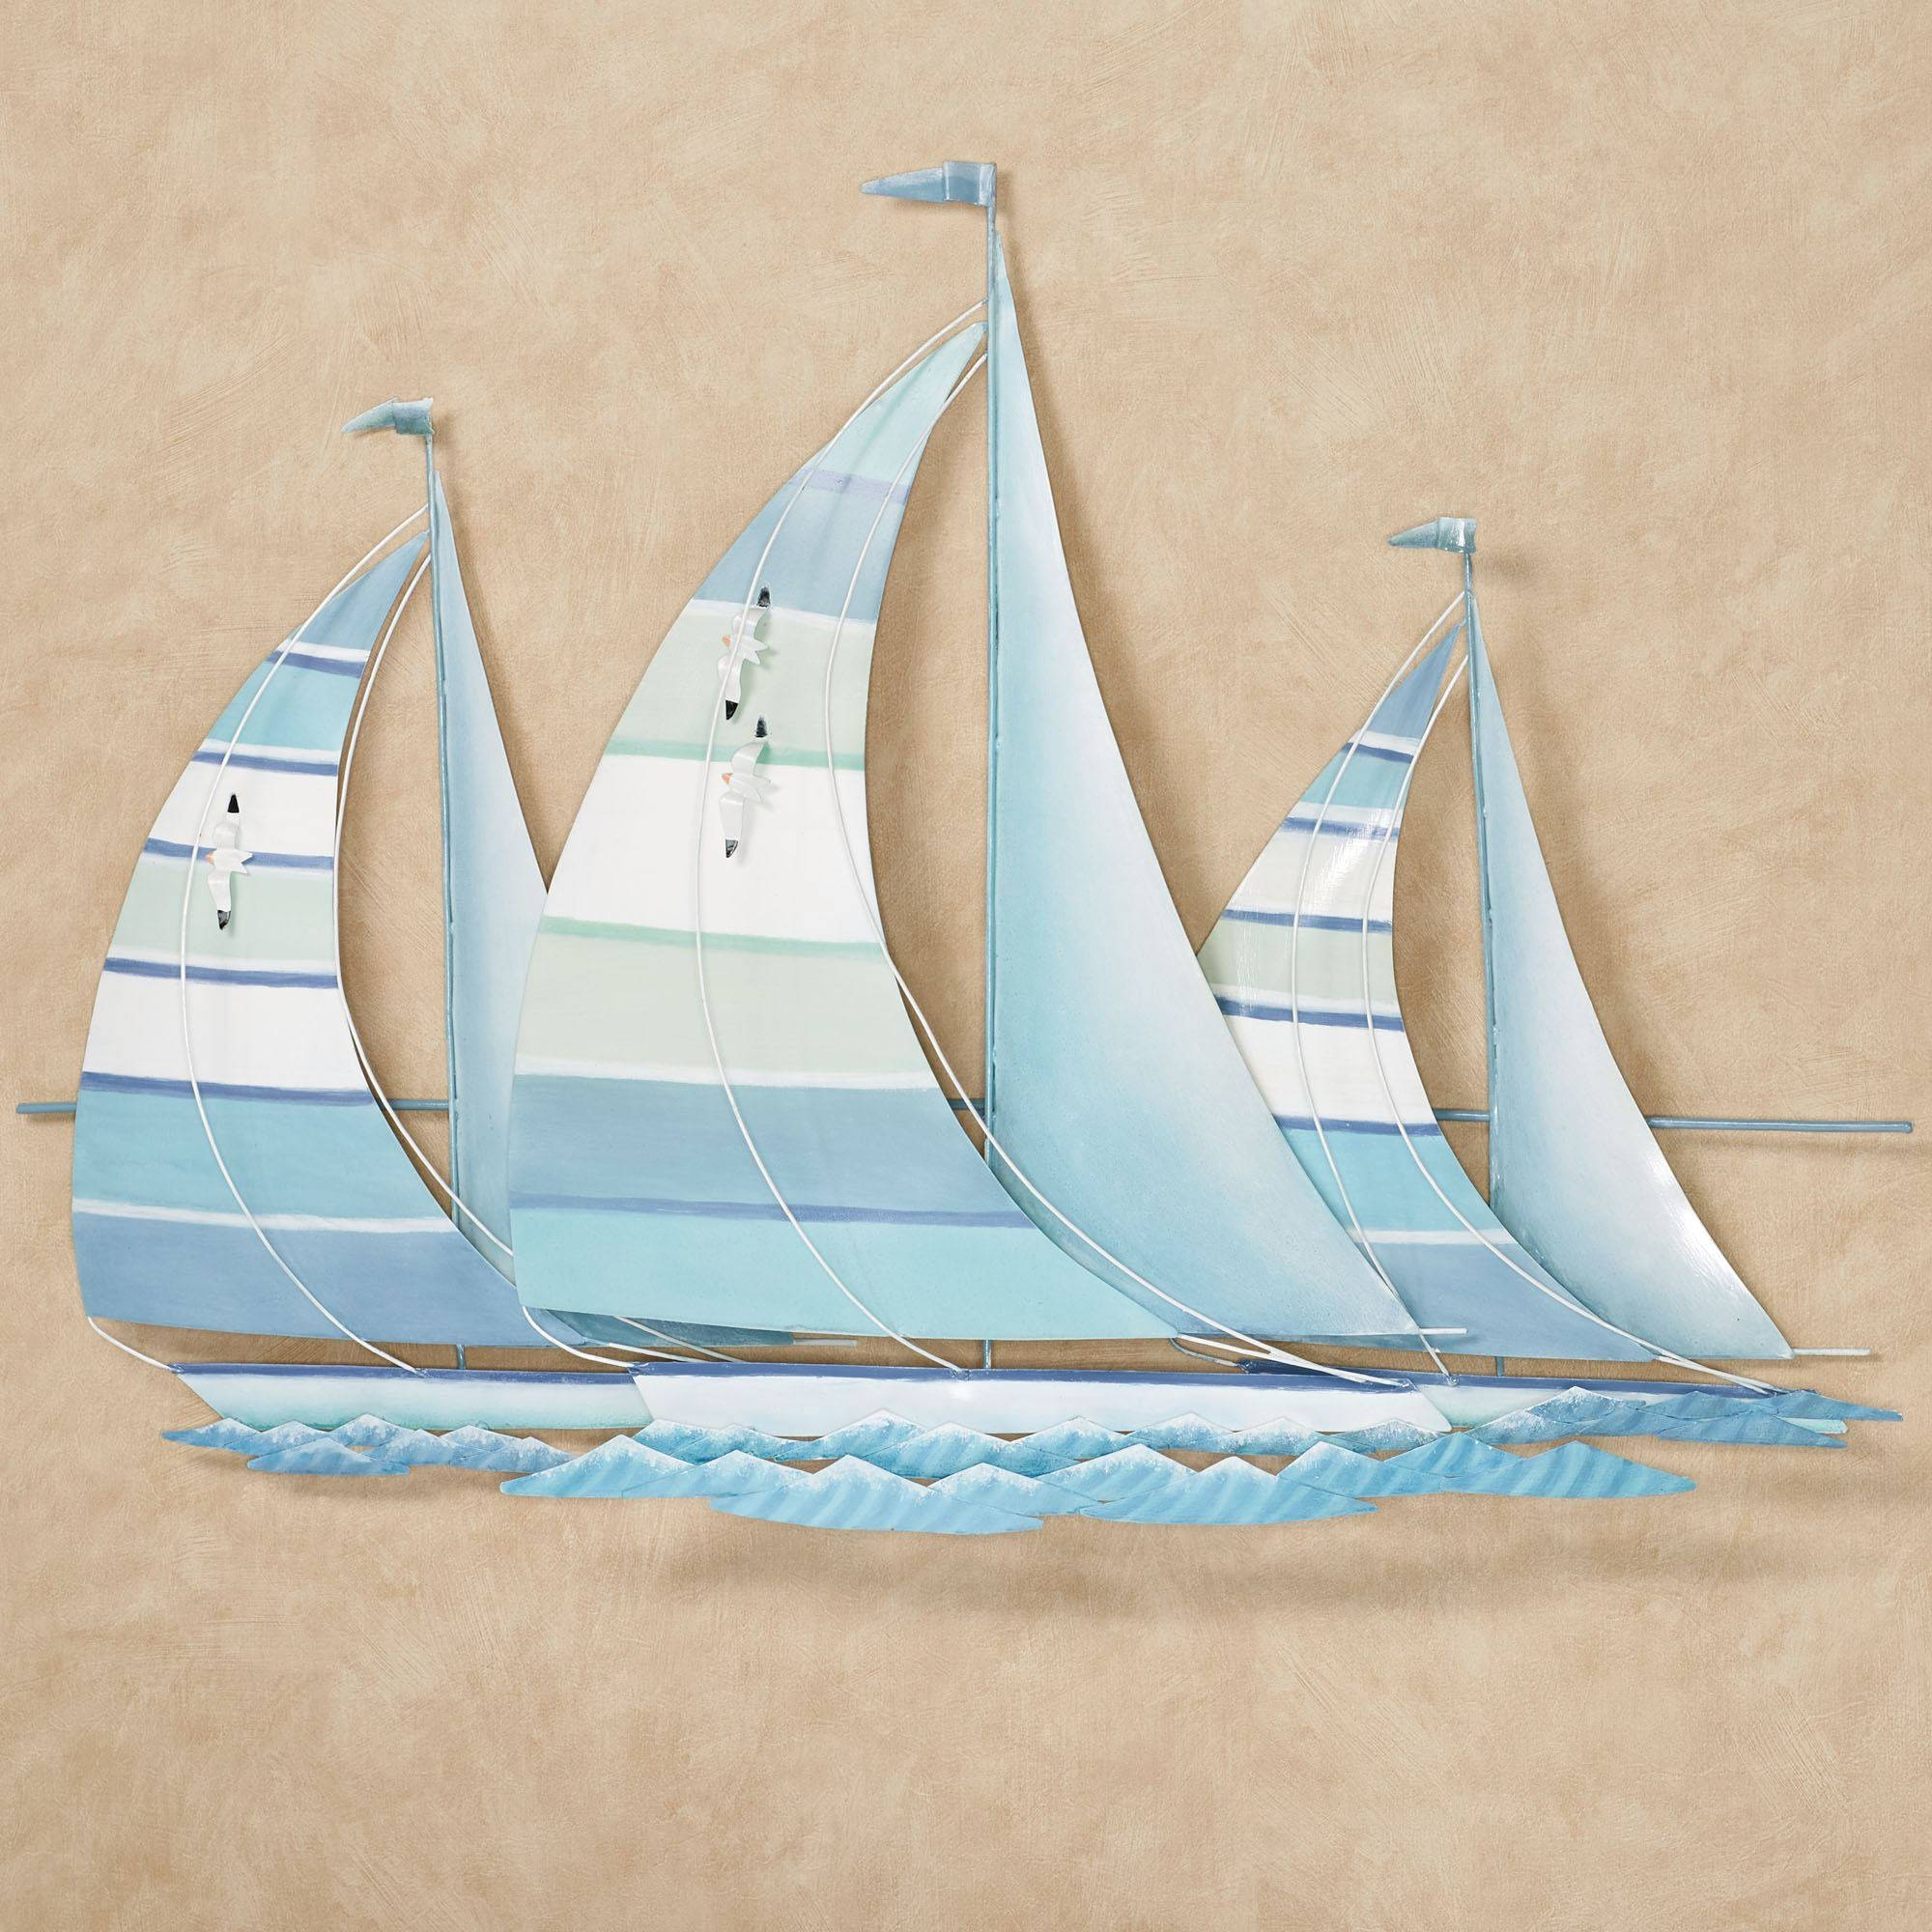 Metal Wall Art Sculptures | Touch Of Class With Regard To 2017 Sailboat Metal Wall Art (Gallery 10 of 30)